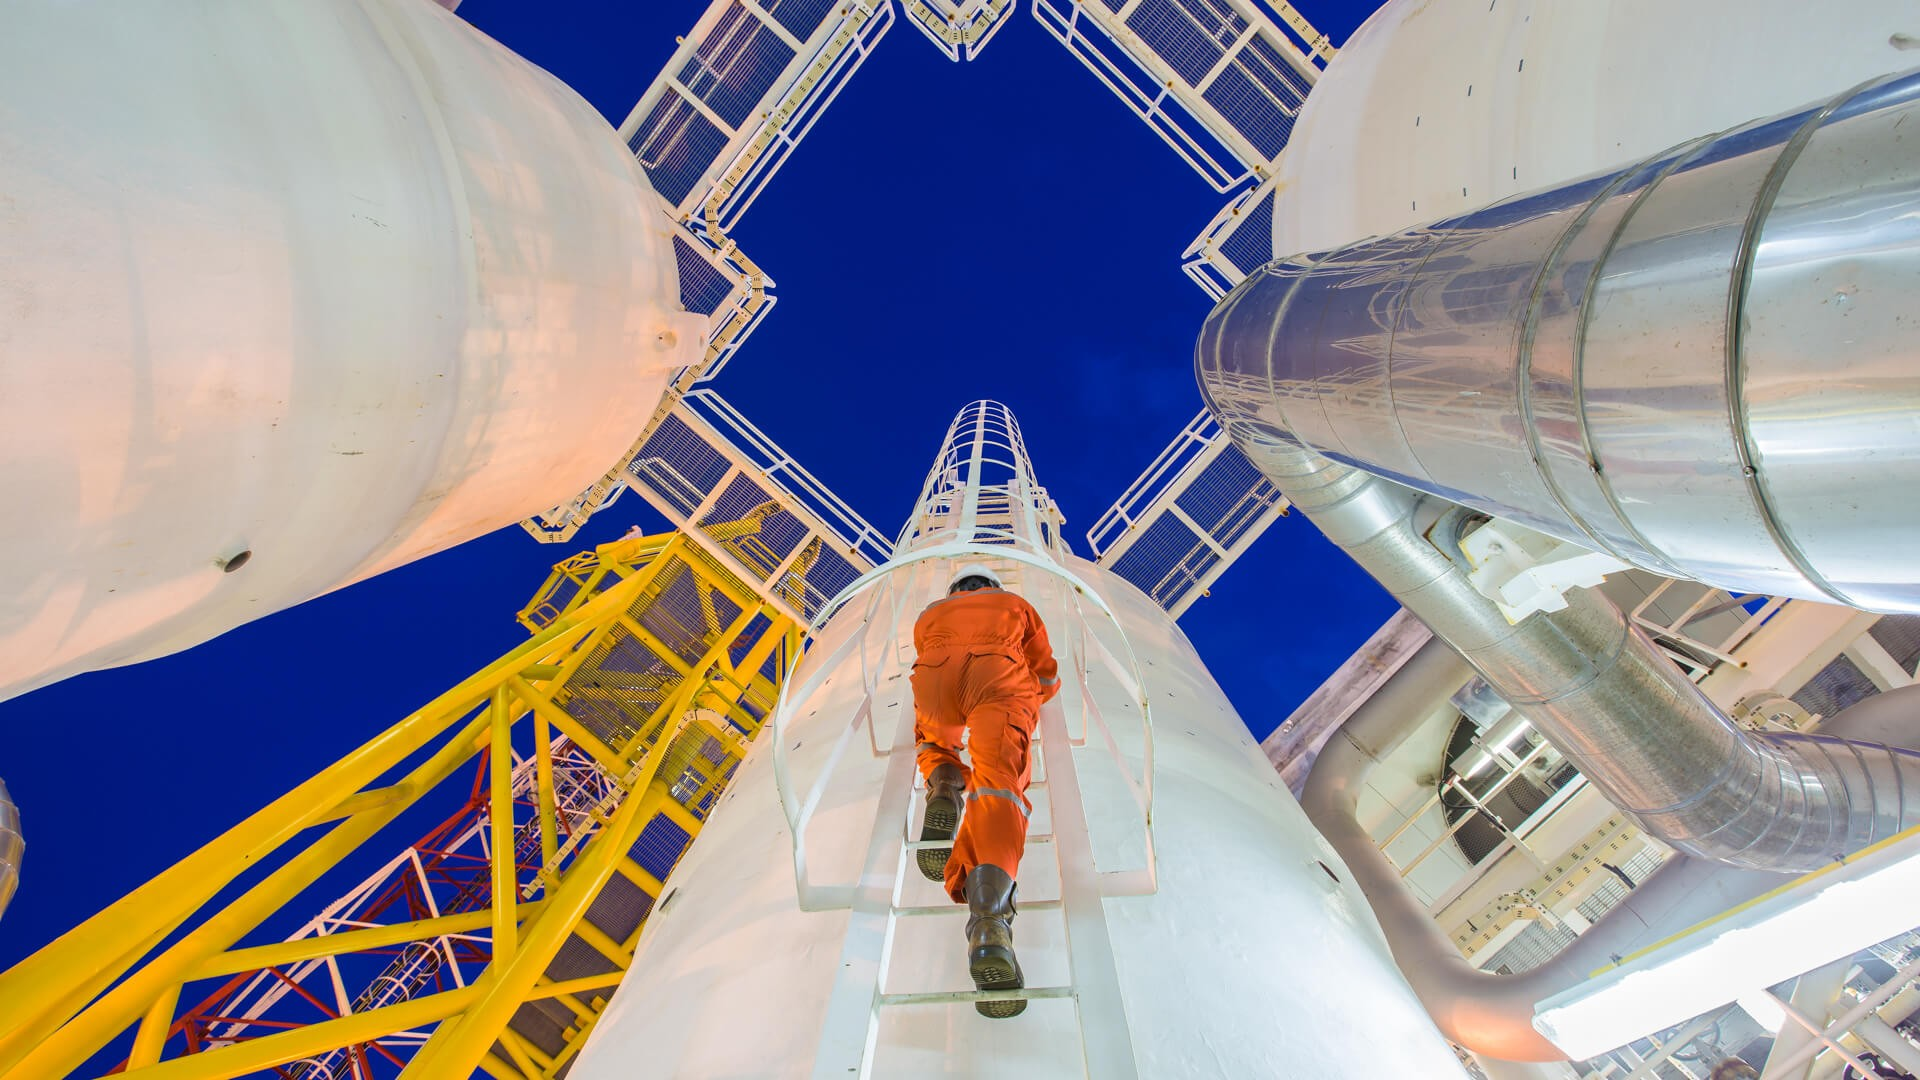 Engineering climb up to oil and gas process plant to observer gas dehydration processing in night shift.